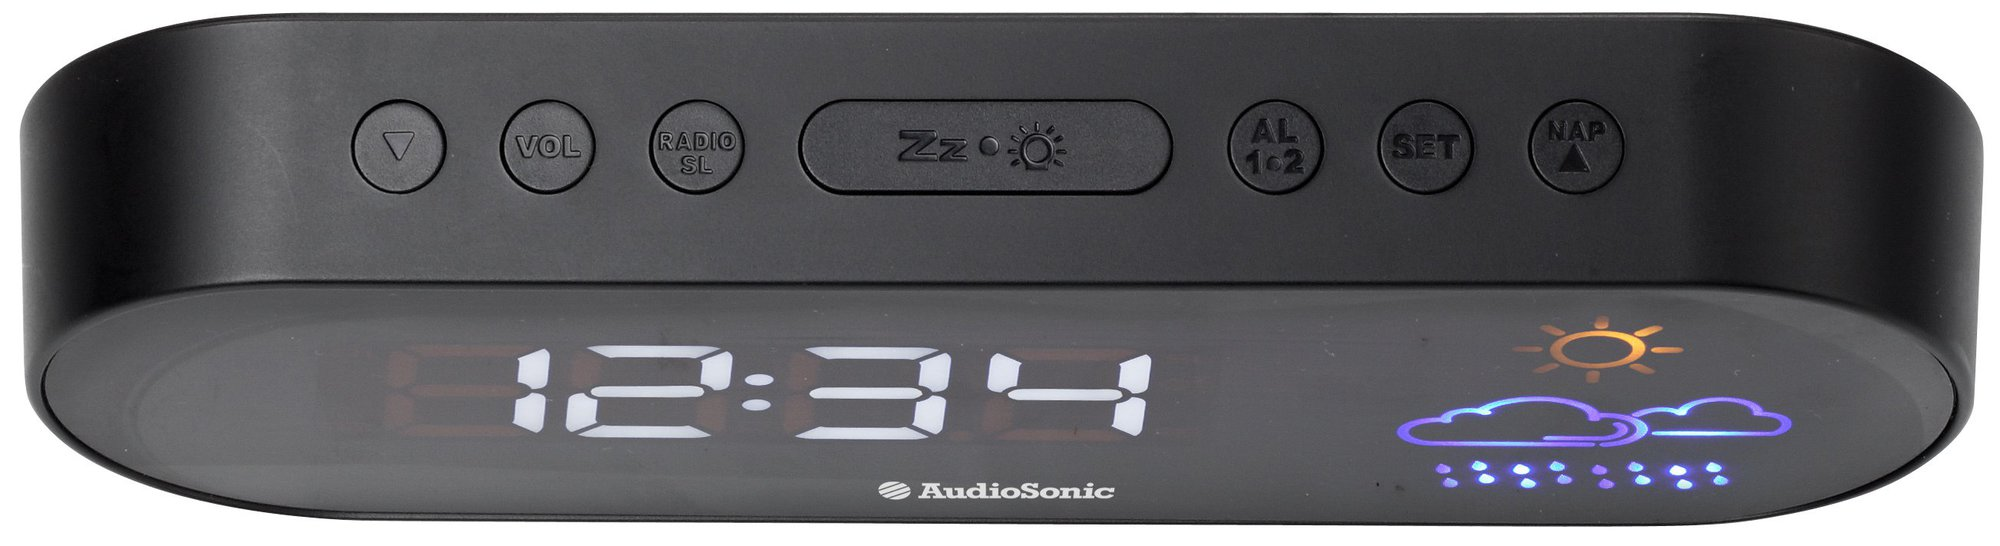 AudioSonic CL-1489 wekkerradio